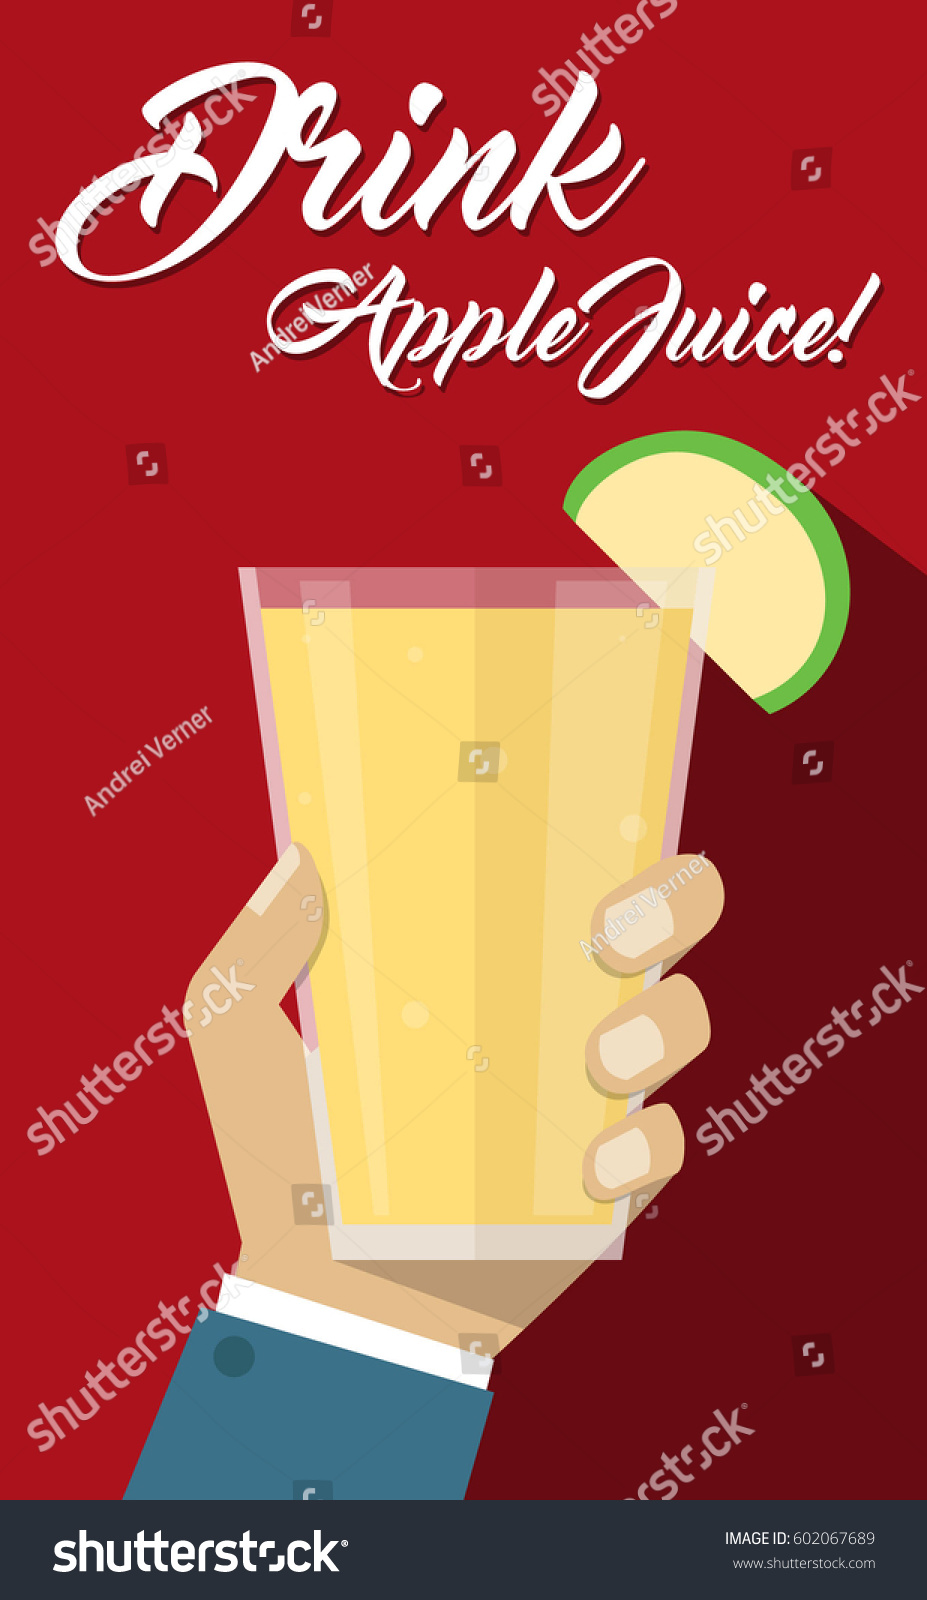 Glass juice cups design - Man Hand Holding Fruit Apple Juice Glass Cup Drink Healthy Beverage Flyer Poster Simple